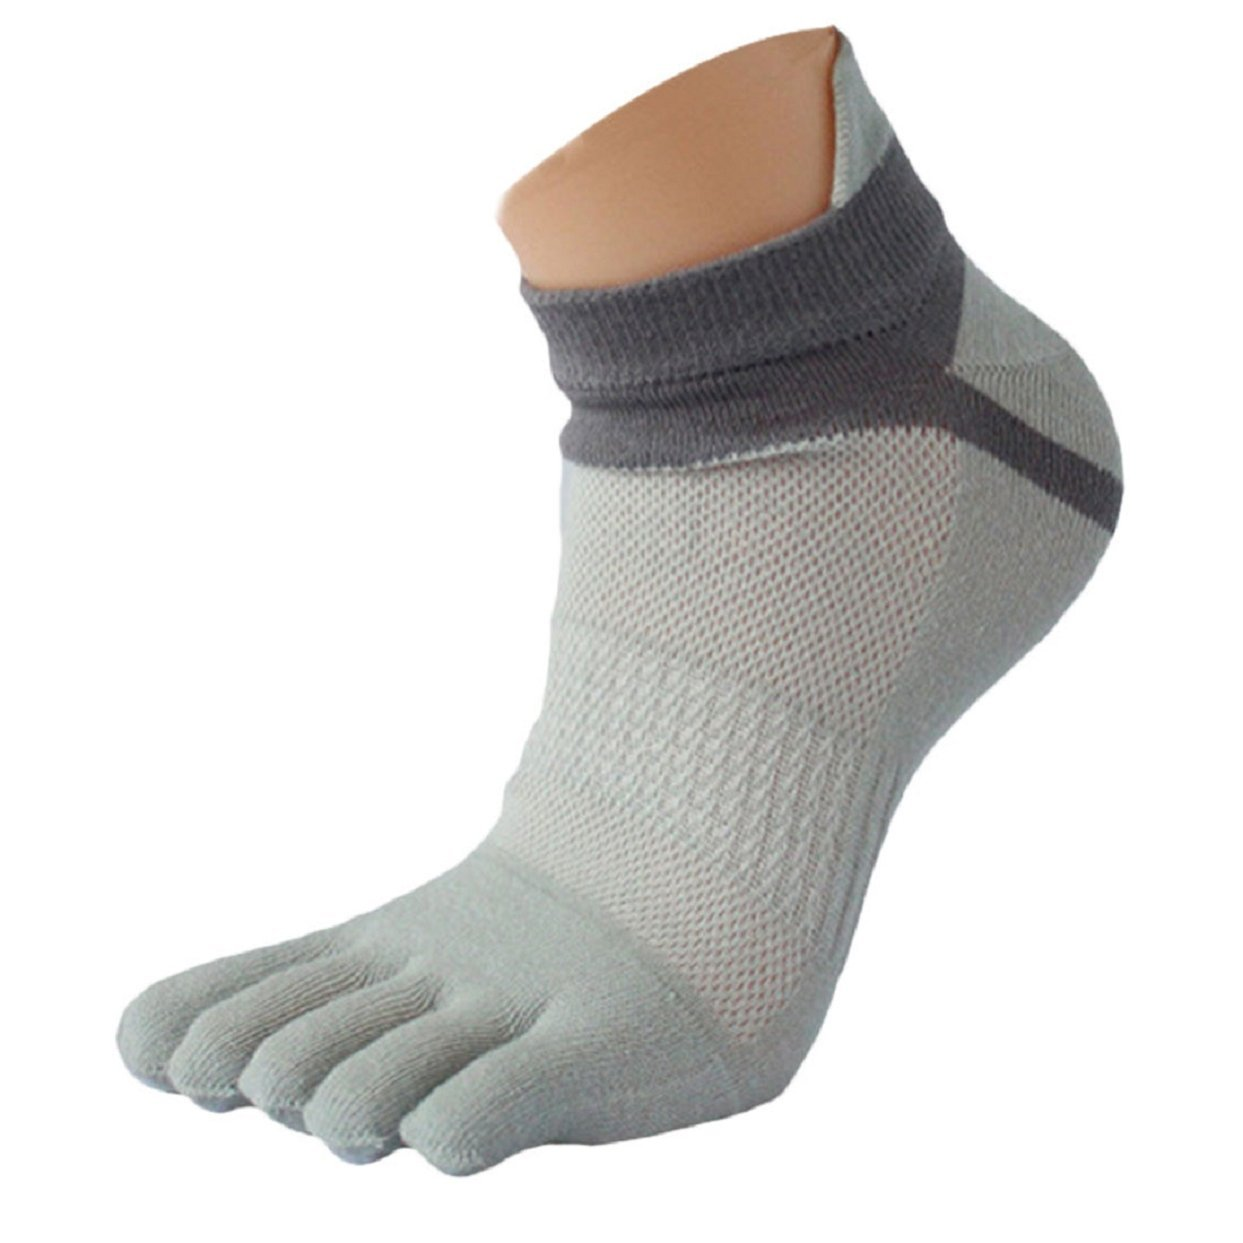 Lowpricenice 1 Pair MenMesh Meias Sports Running Five Finger Toe Socks